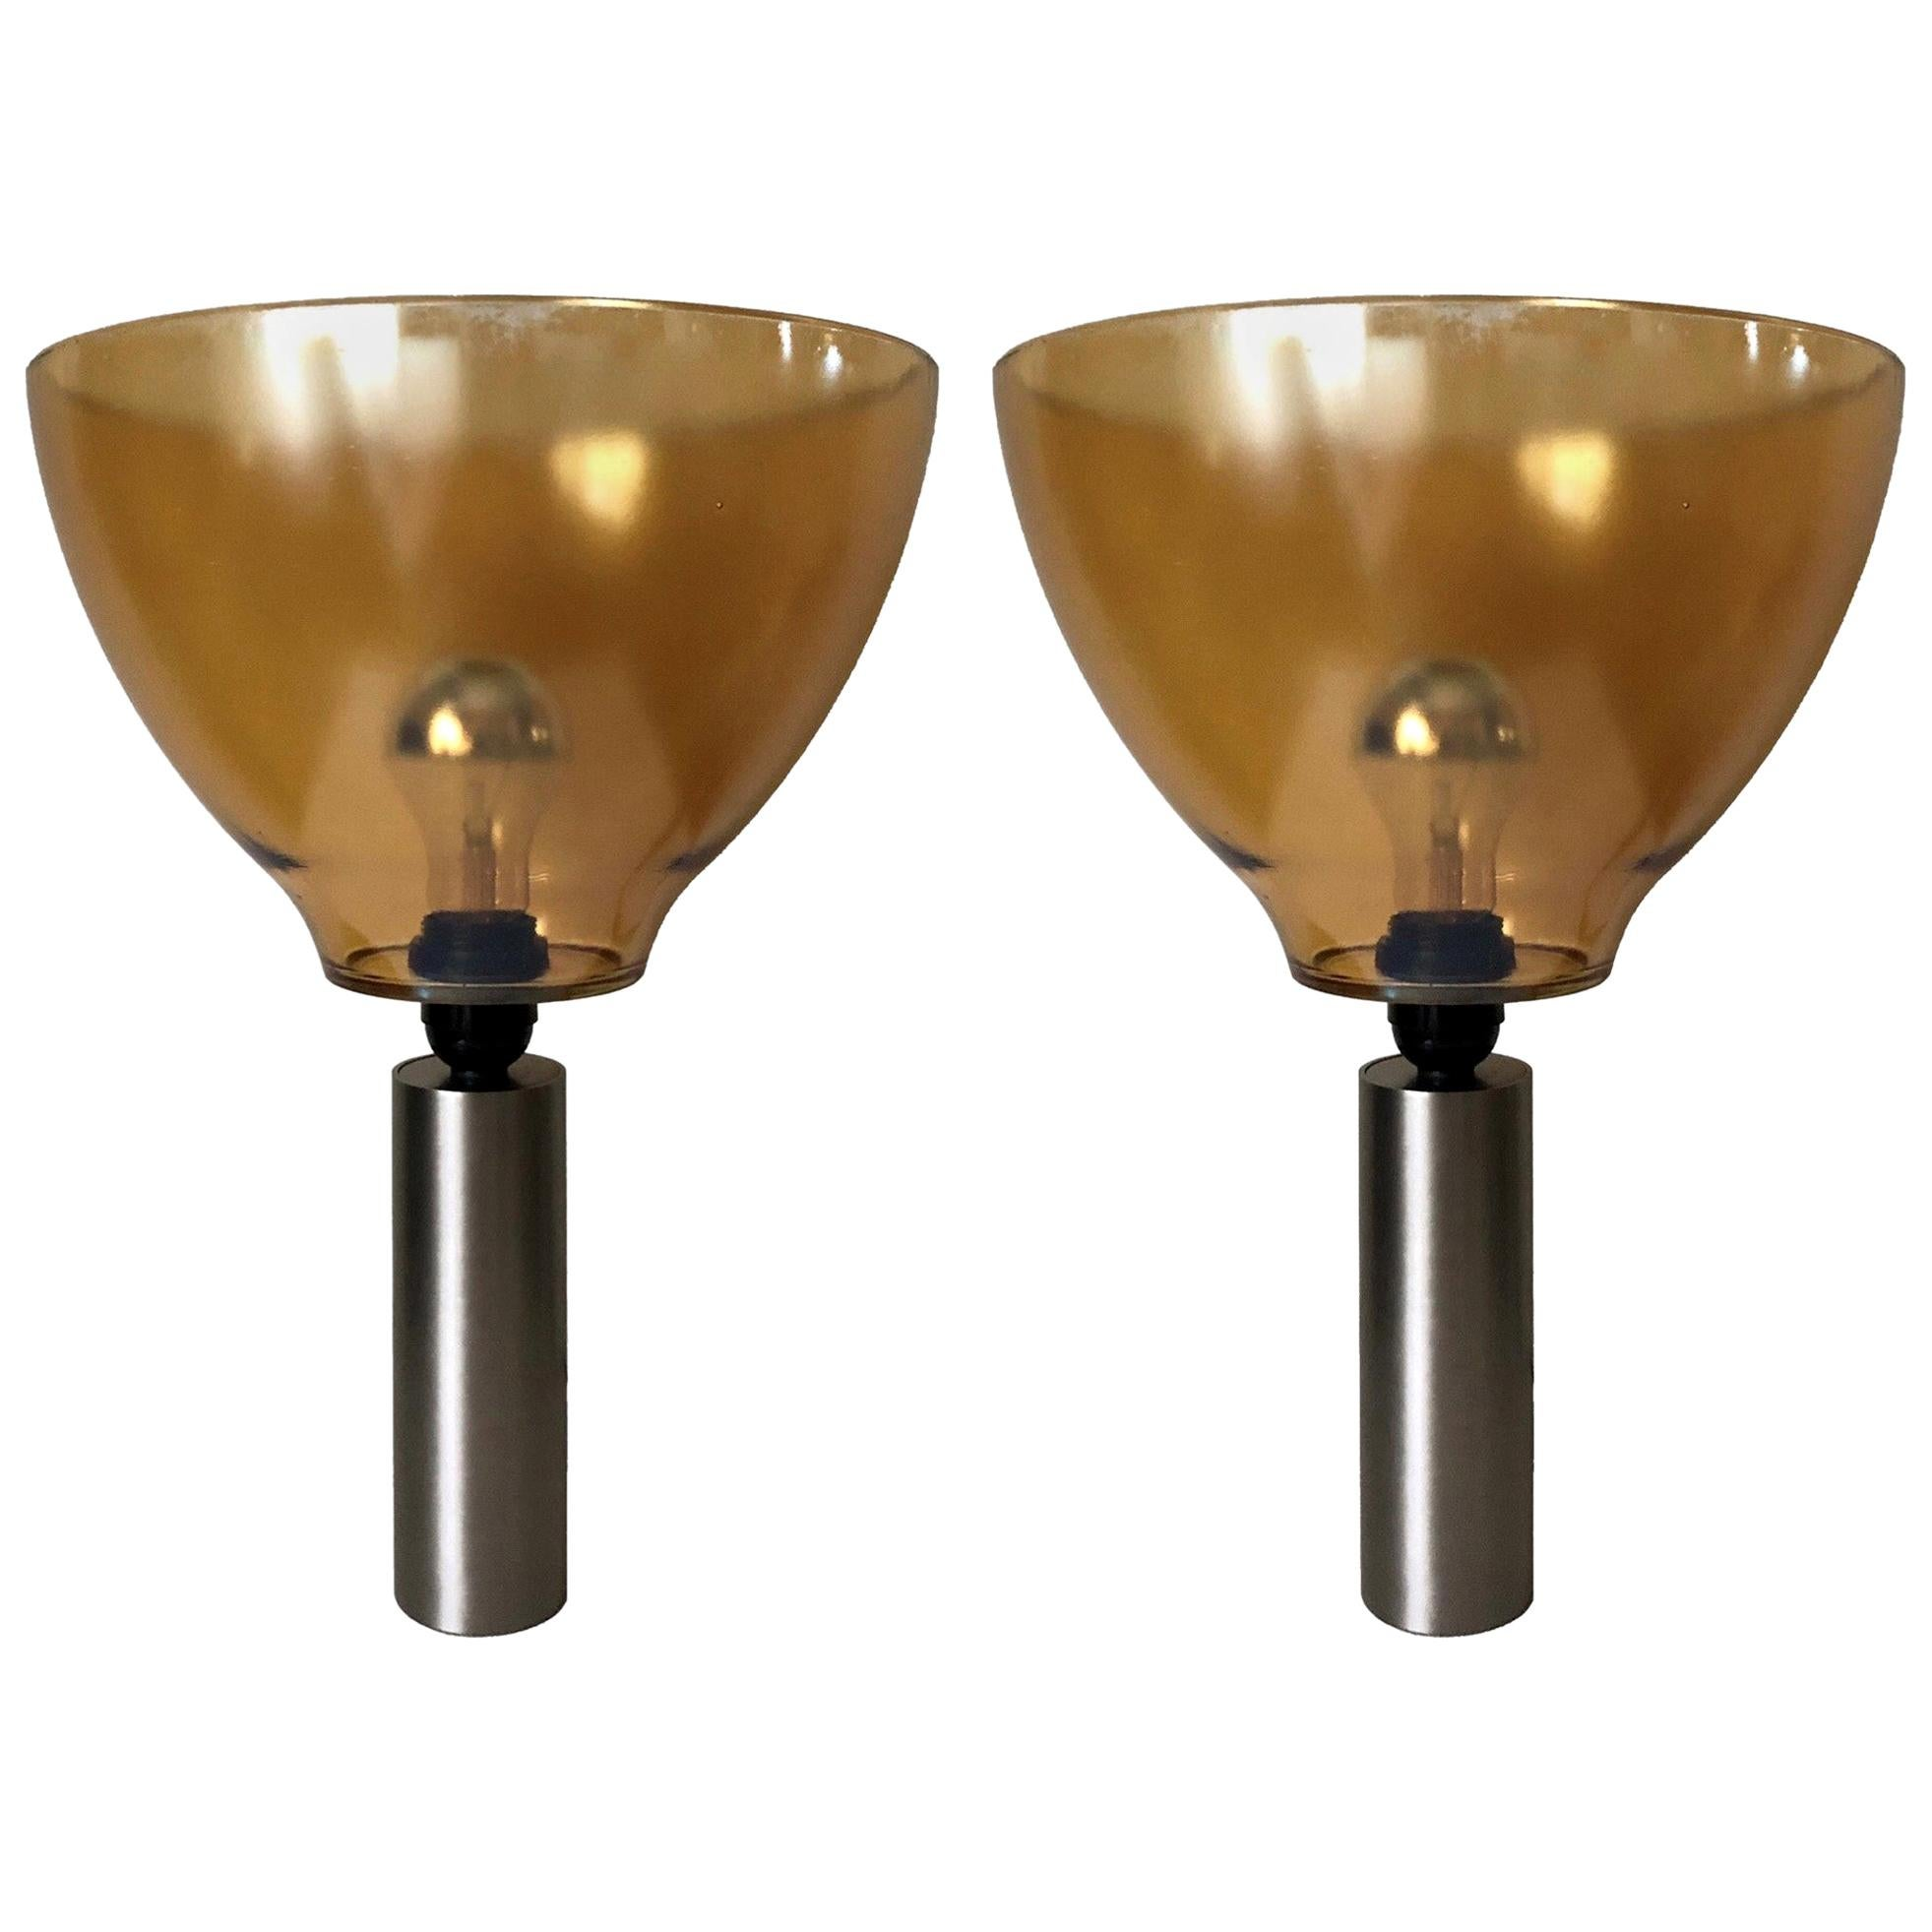 Pair of Italian Amber Murano Glass Table Lamps, 1980s